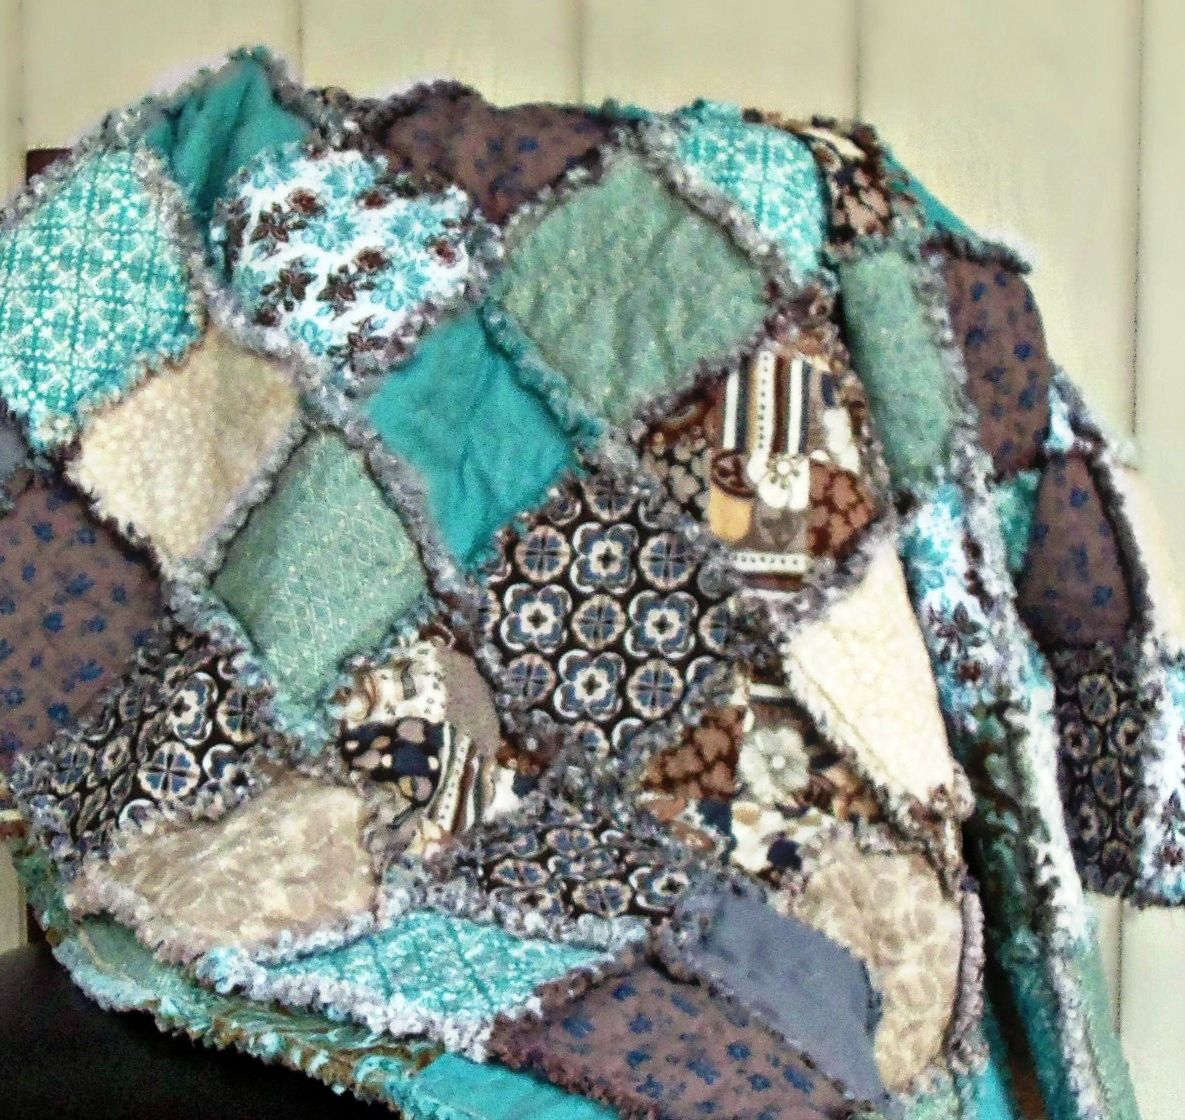 Taupe - Teal - Tan - Brown - Grey Rag Quilt. Modern Rag Quilts by ... : teal and brown quilt - Adamdwight.com